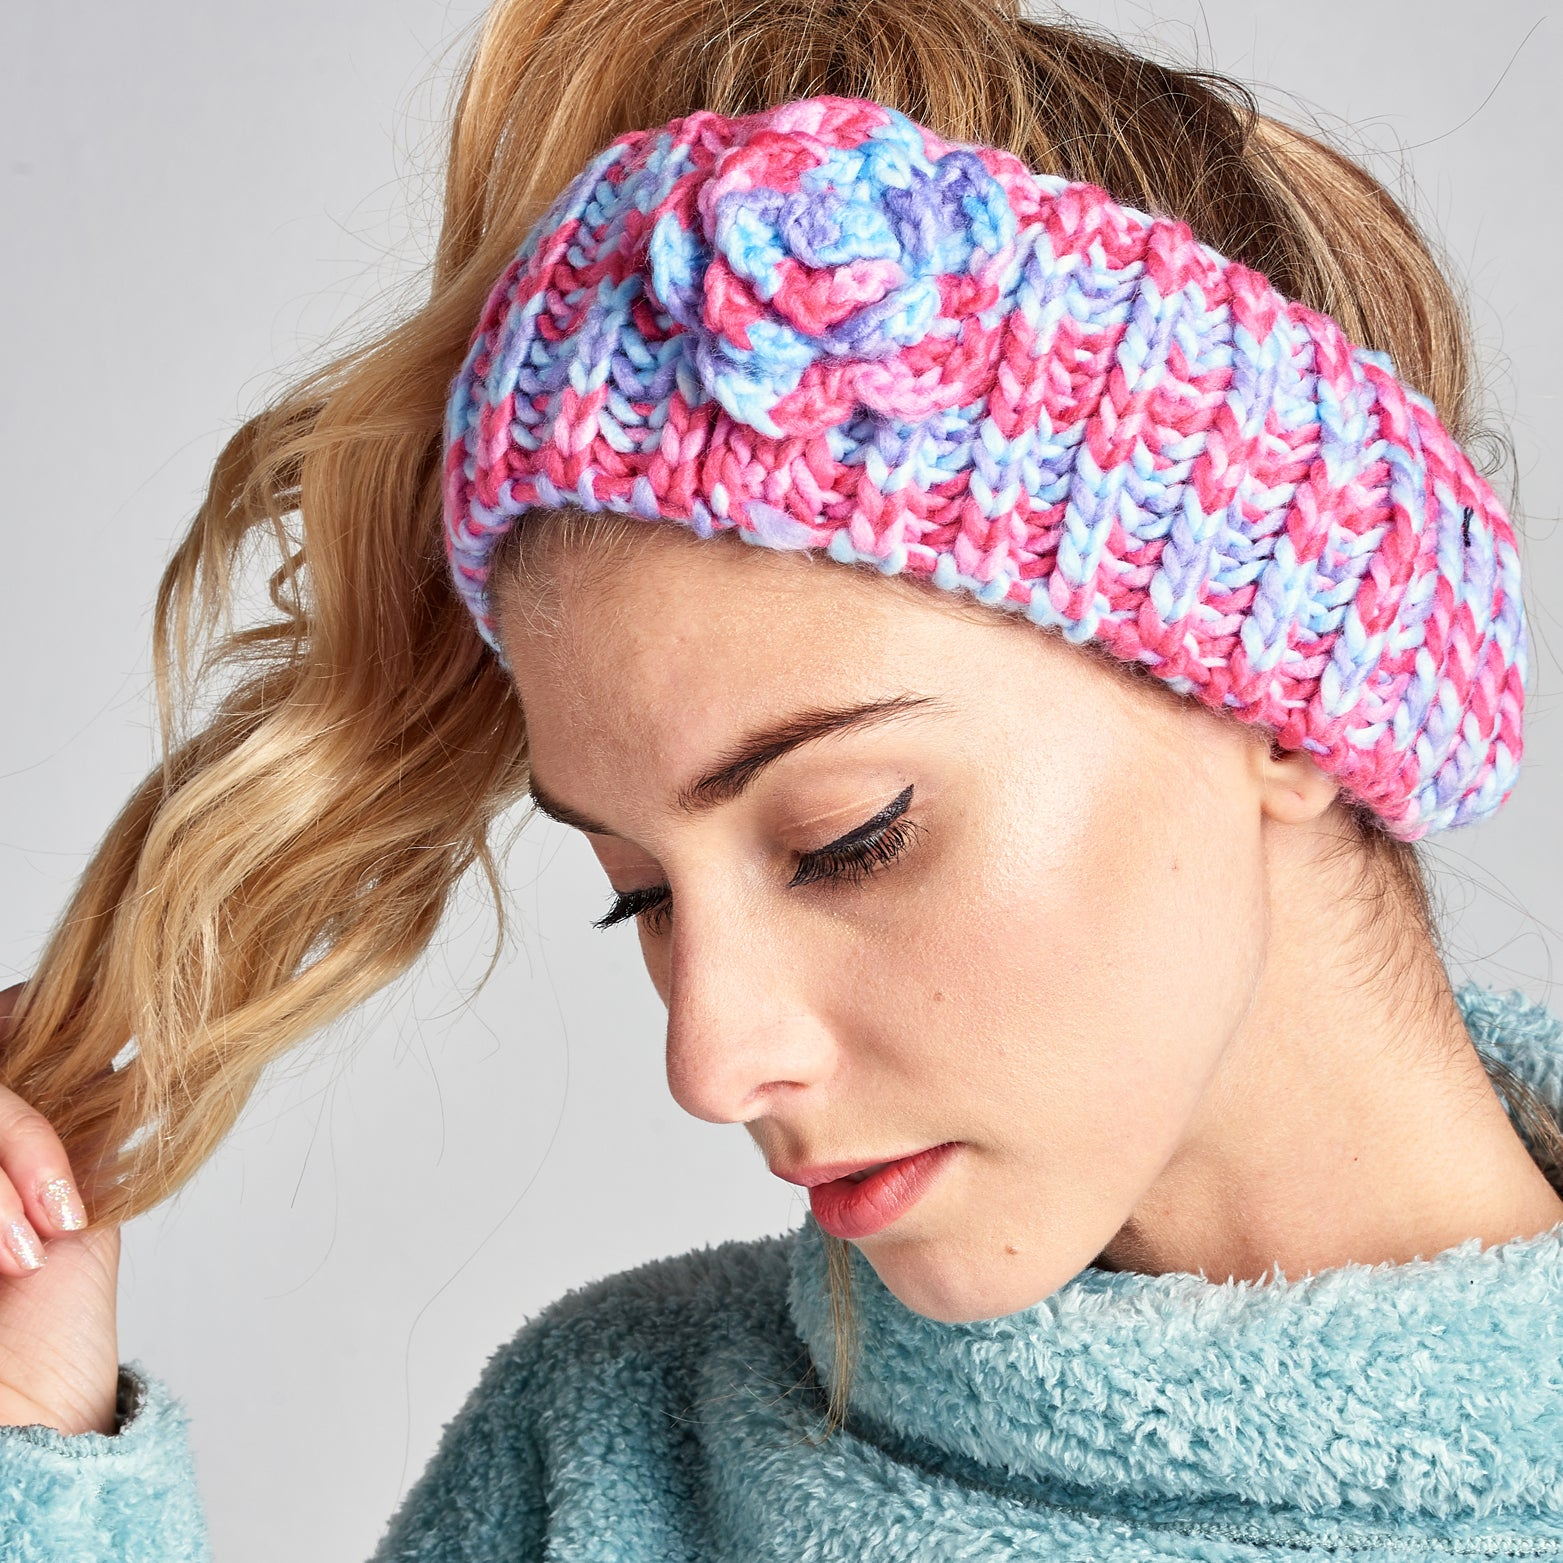 Crochet Knit Floral Headband